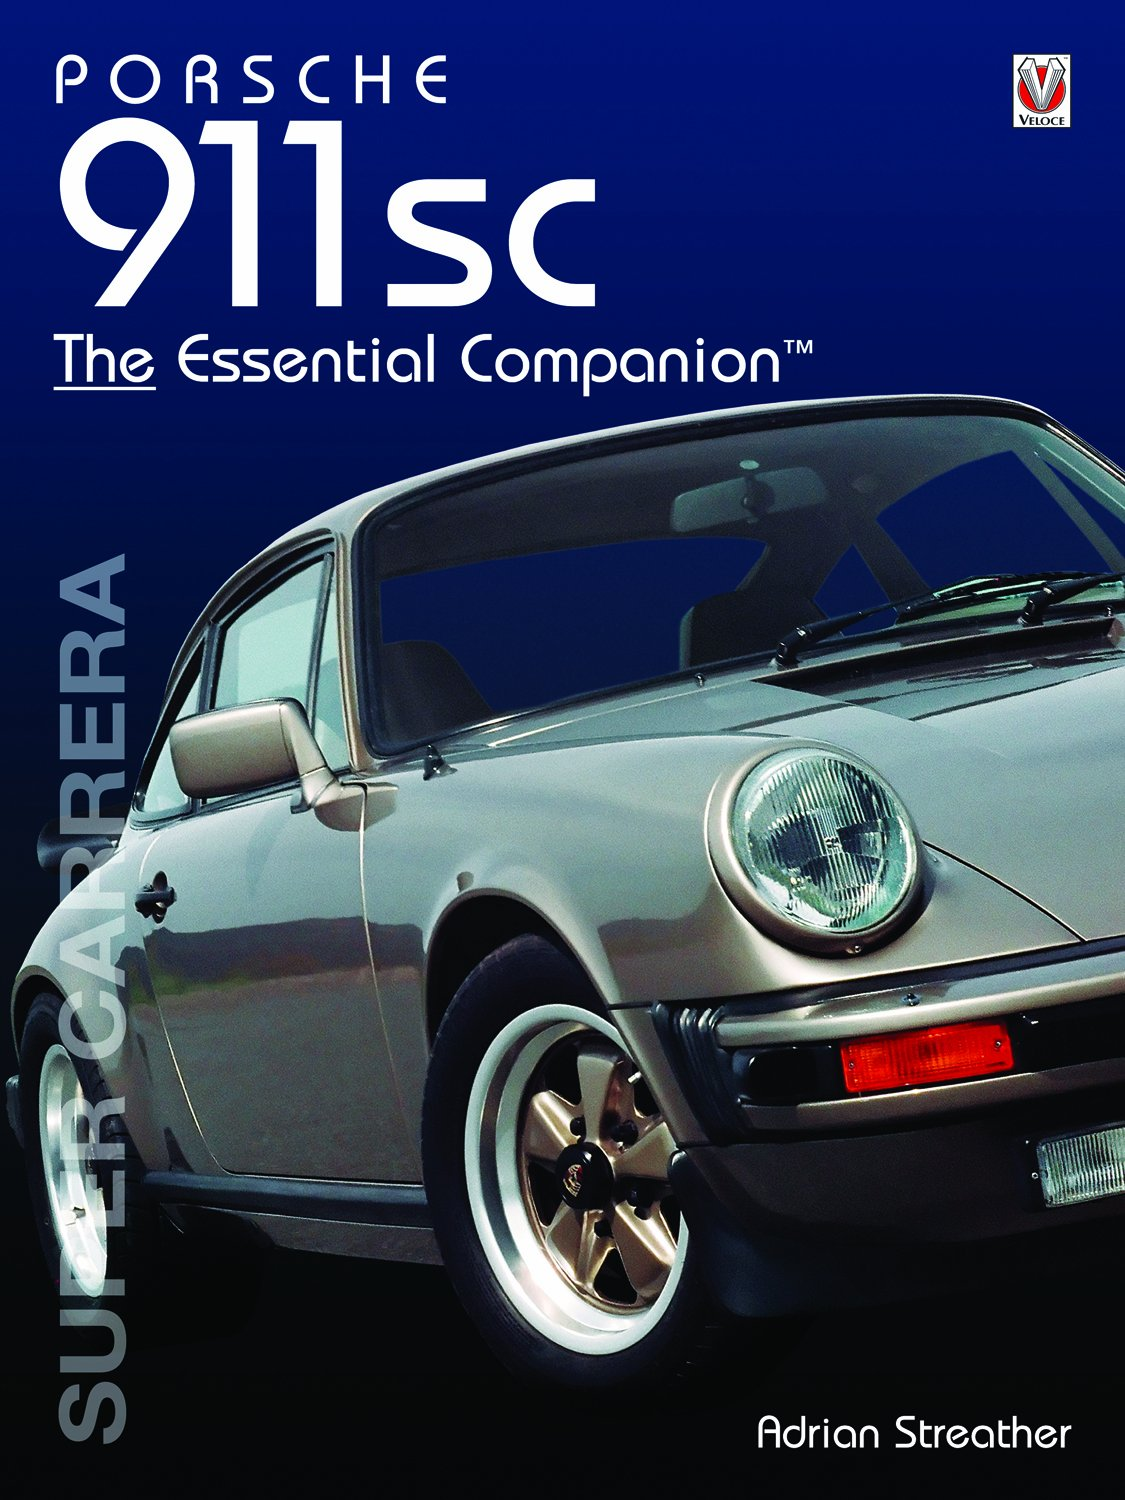 Porsche 911SC: The Essential Companion (The Essential Companion): Adrian  Streather: 9781845840020: Amazon.com: Books